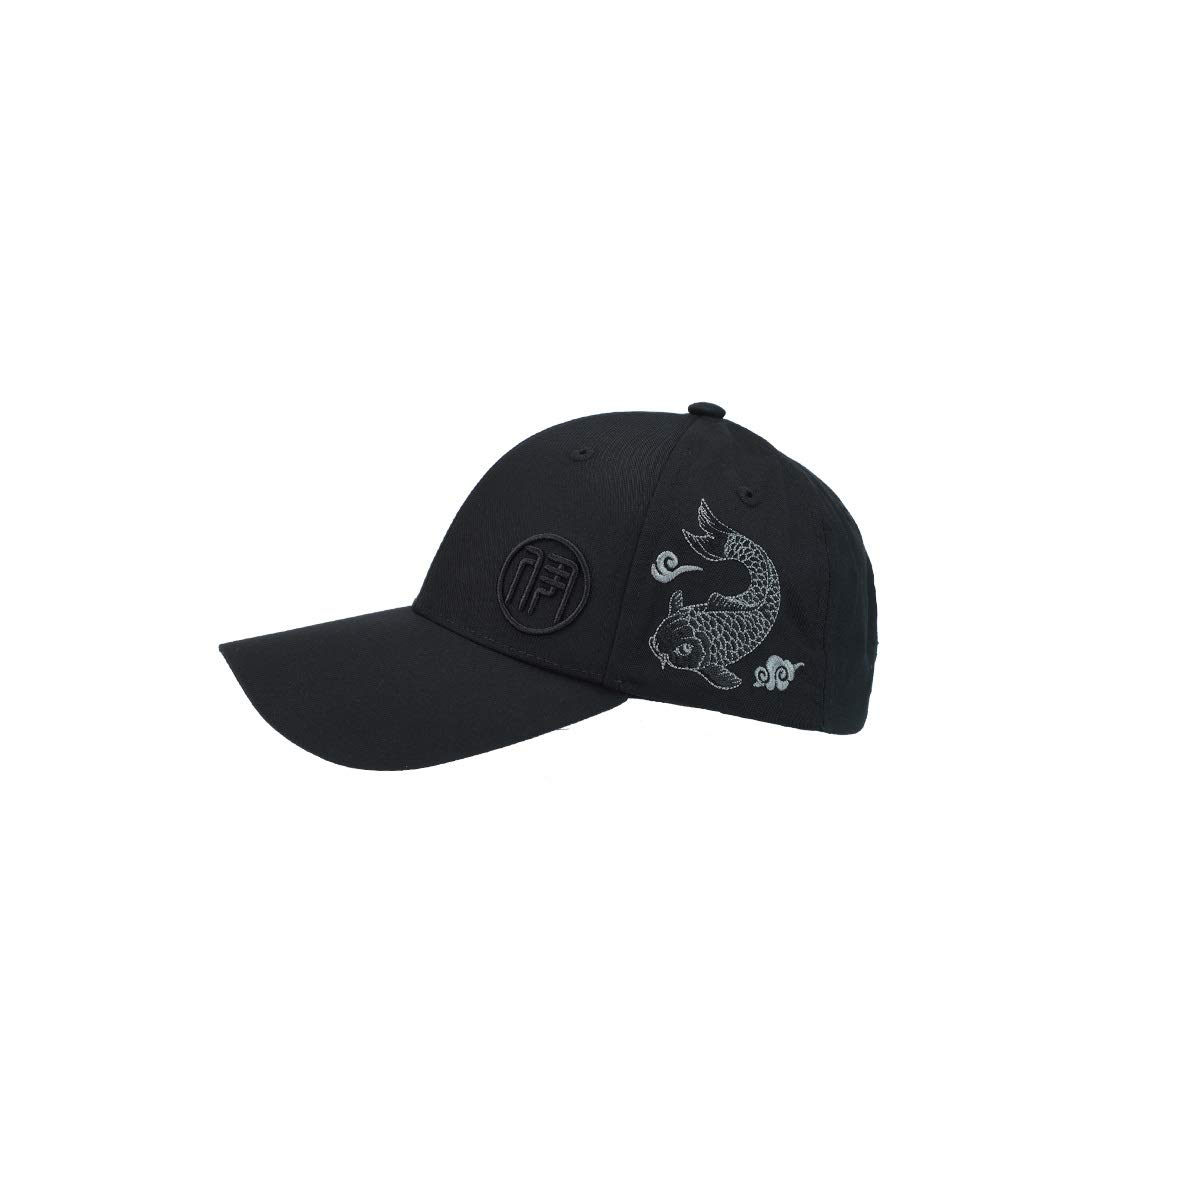 Zhongyue Spring and Autumn Chinese Style Baseball Cap Comfortable Breathable Men and Women Hat, White, Black Summer hat (Color : Black)